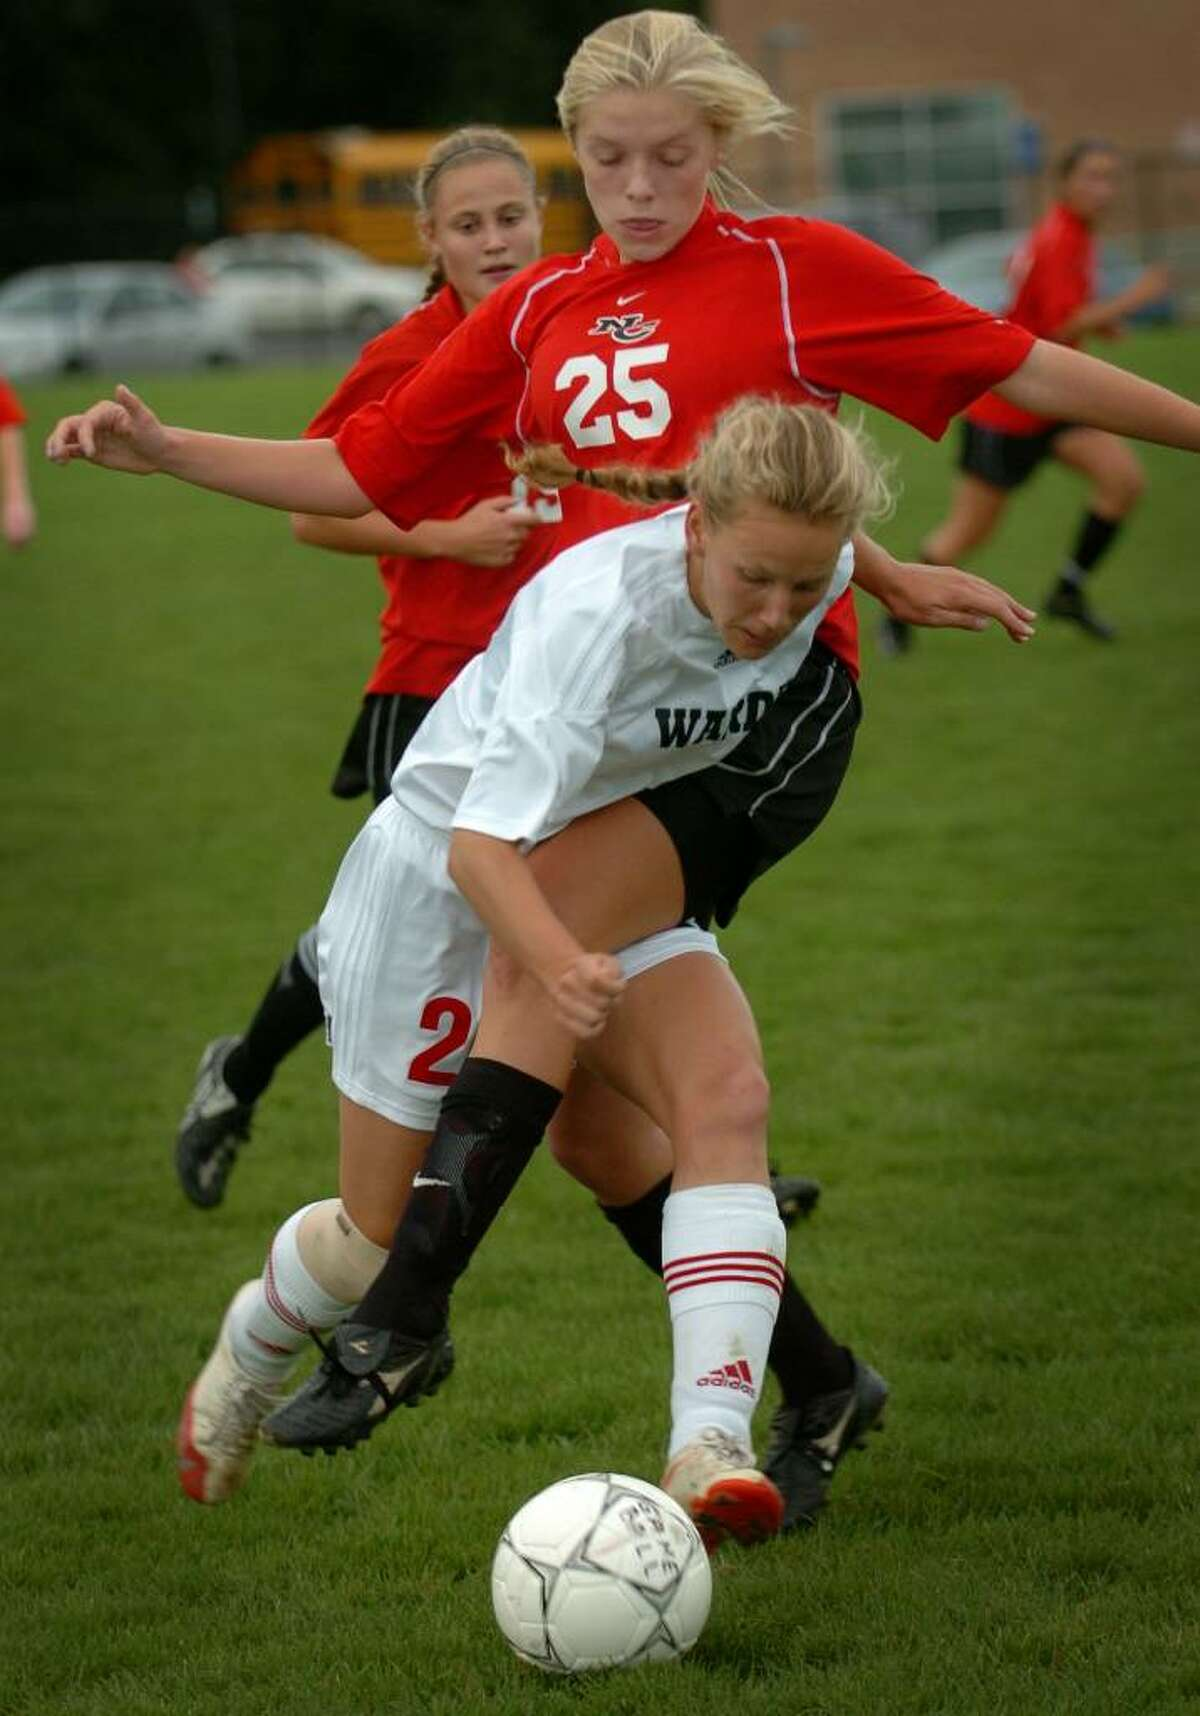 Fairfield Warde's Sarah Duffy locks up with New Canaan defender Kelly Armstrong during their FCIAC matchup at Warde High School in Fairfield, Conn. on Wednesday, September 30, 2009.